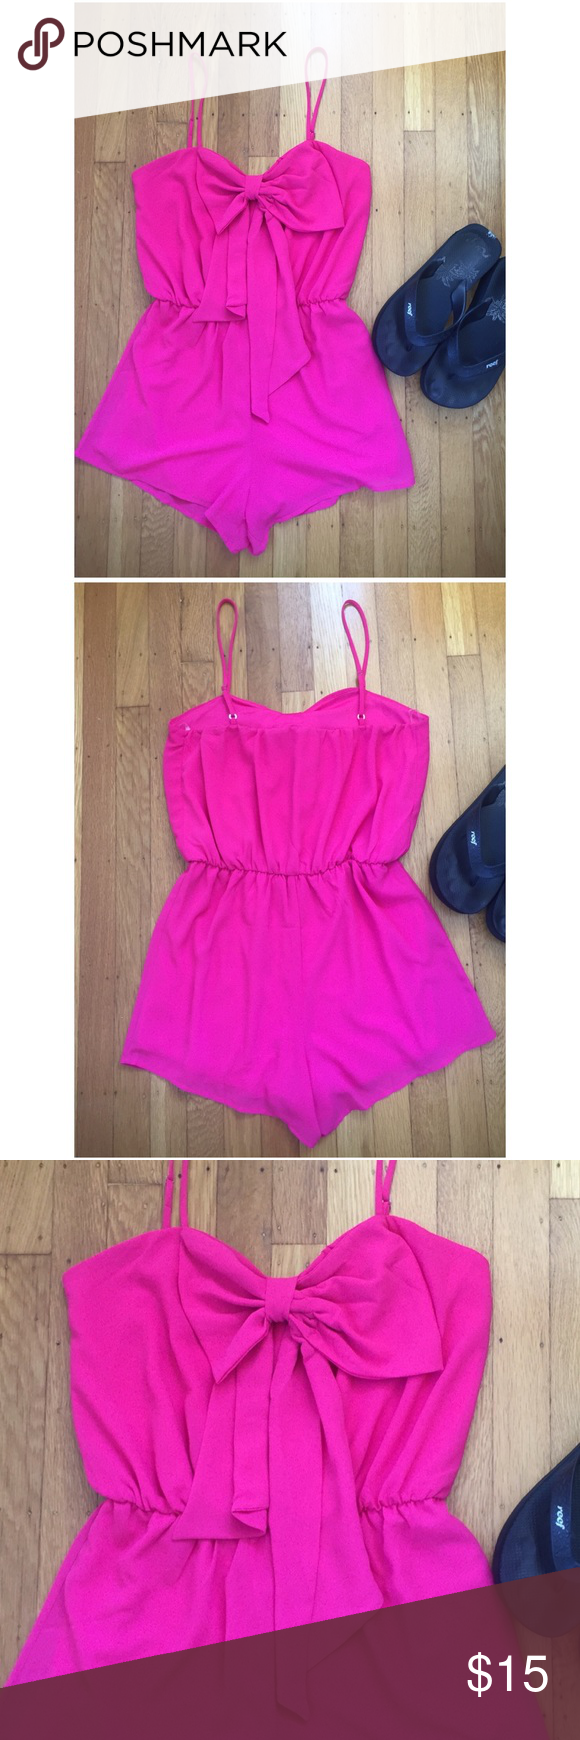 """Chocolate Brand Hot Pink Roomer.  Summer Perfect. Chocolate Brand Hot Pink Roomer.  Summer Perfect. NWT.  Bust 37"""". Waist 27"""".  Elastic waist band stretches to 32"""".  Hips 39"""".  Totally lined.  New romper in perfect condition.  So gorgeous and perfect for summer. FIRM PRICE. Chocolate Shorts"""